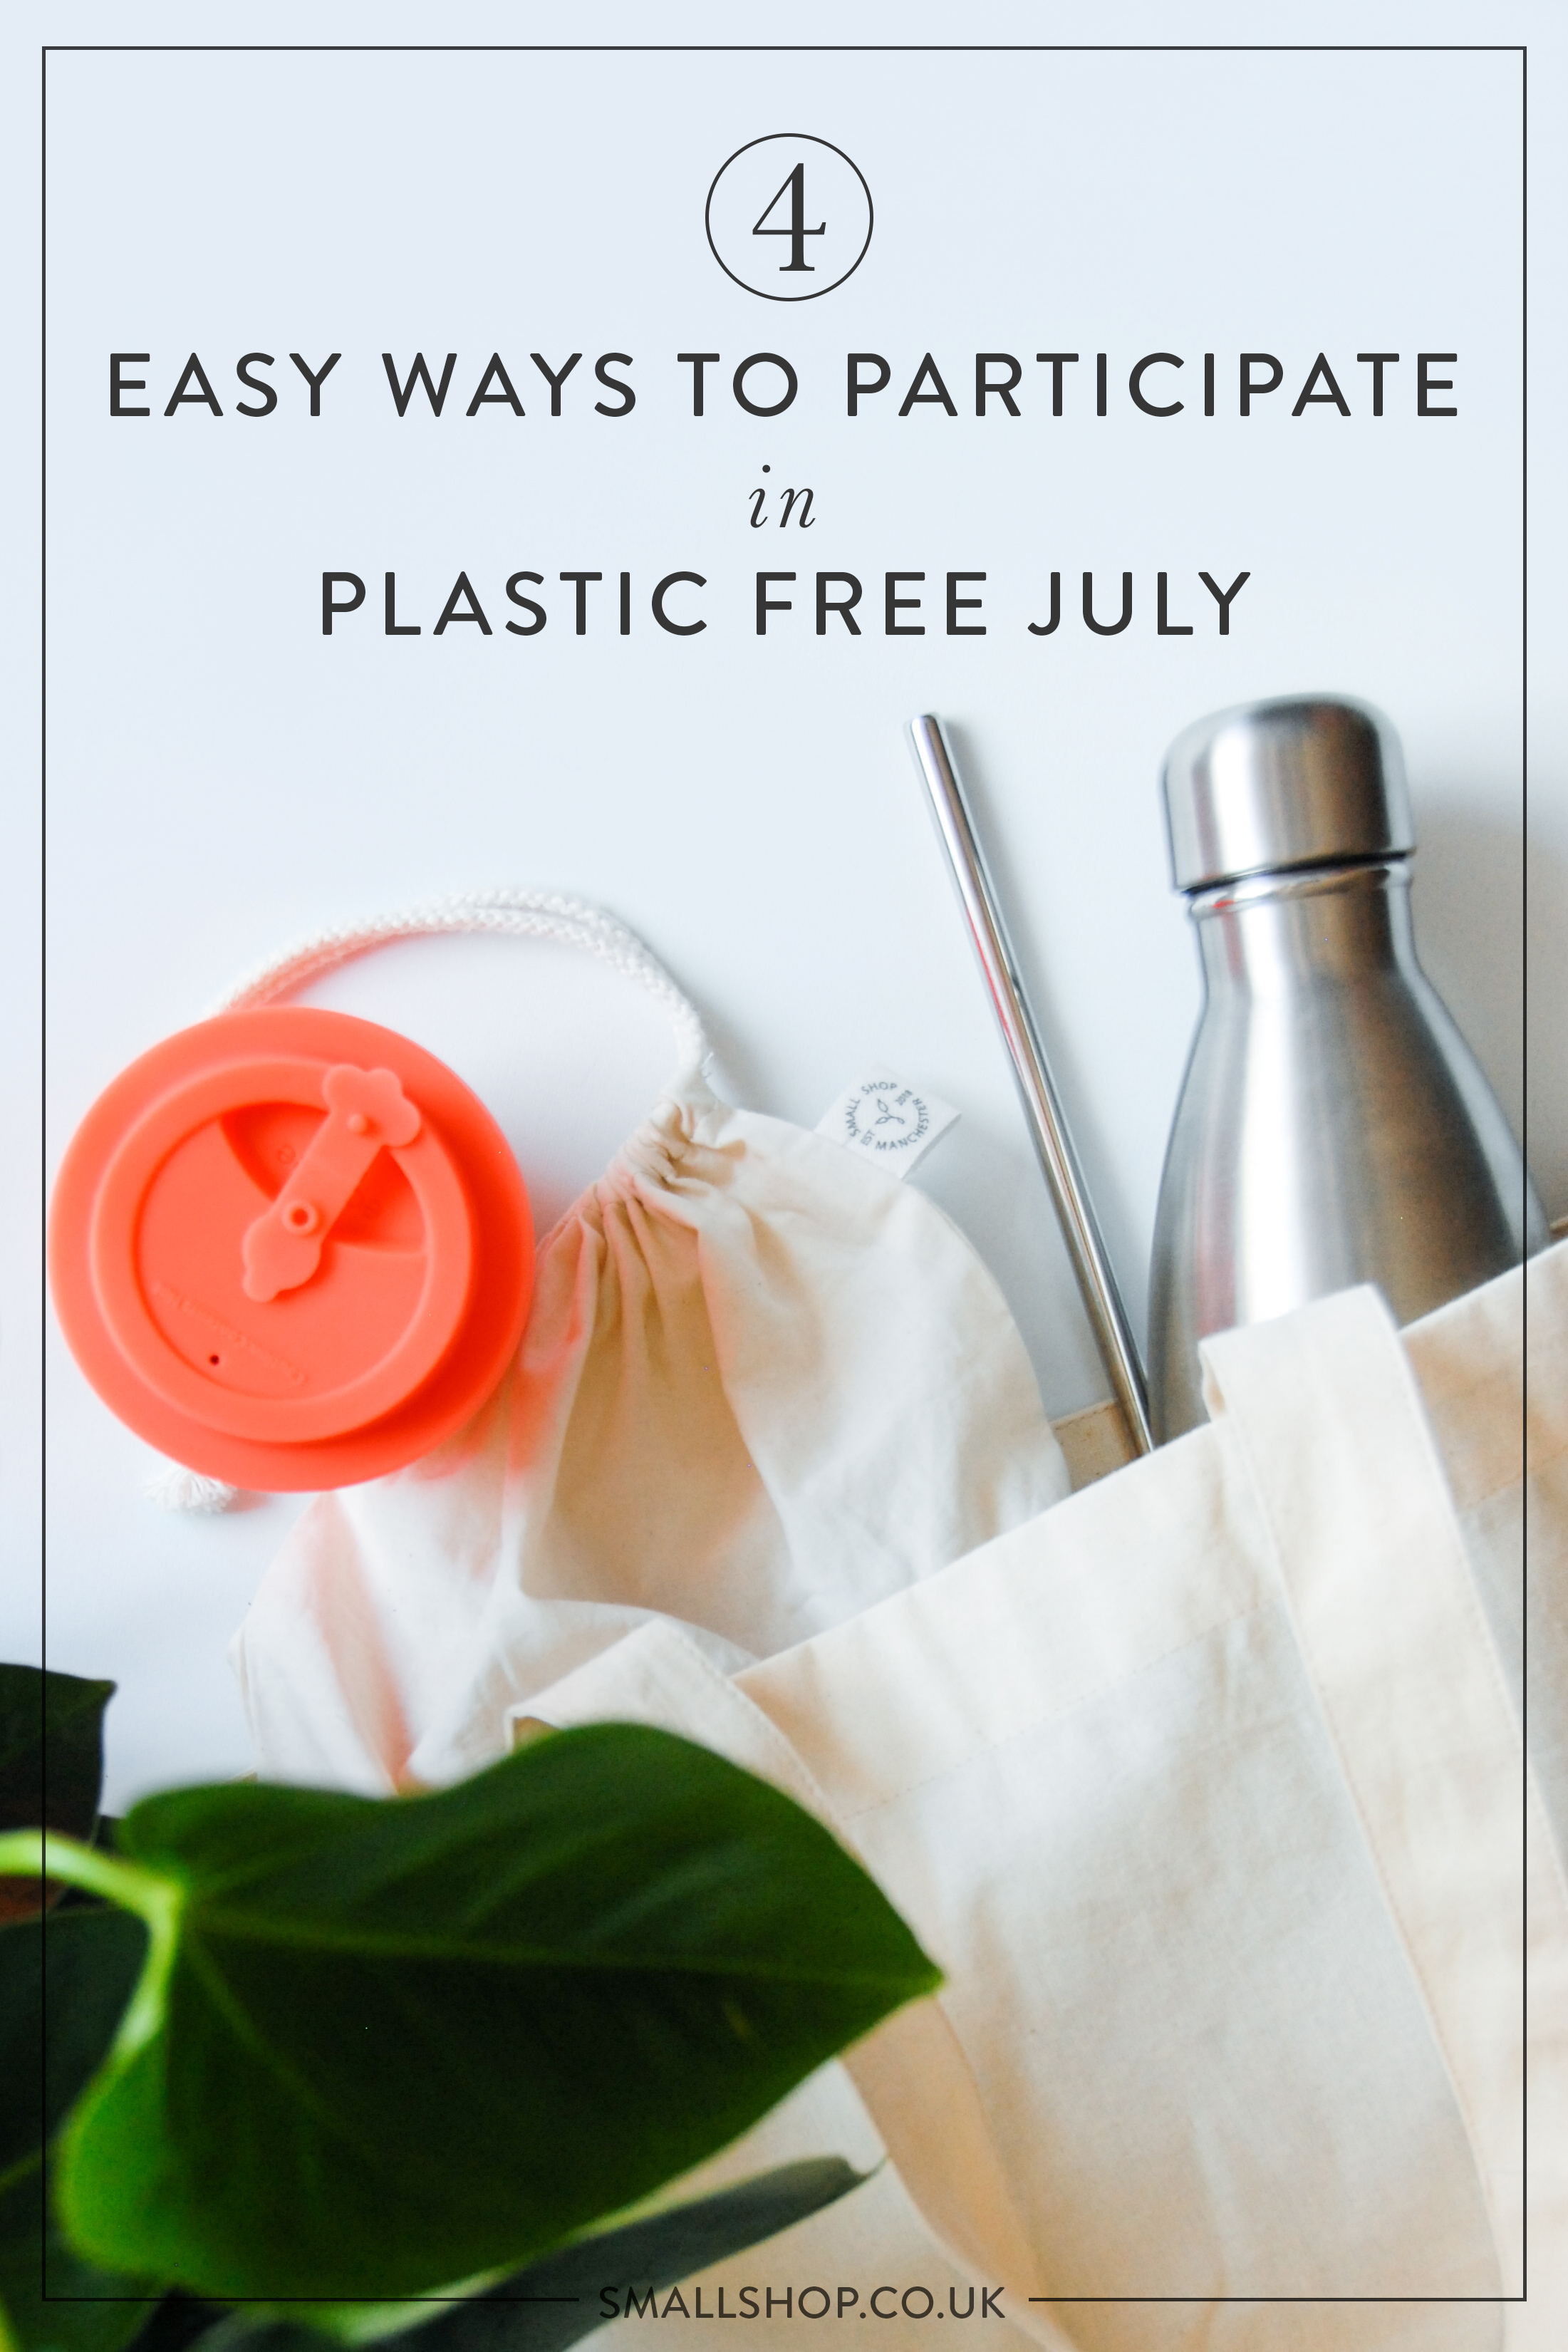 4 Easy Ways to Participate in Plastic Free July